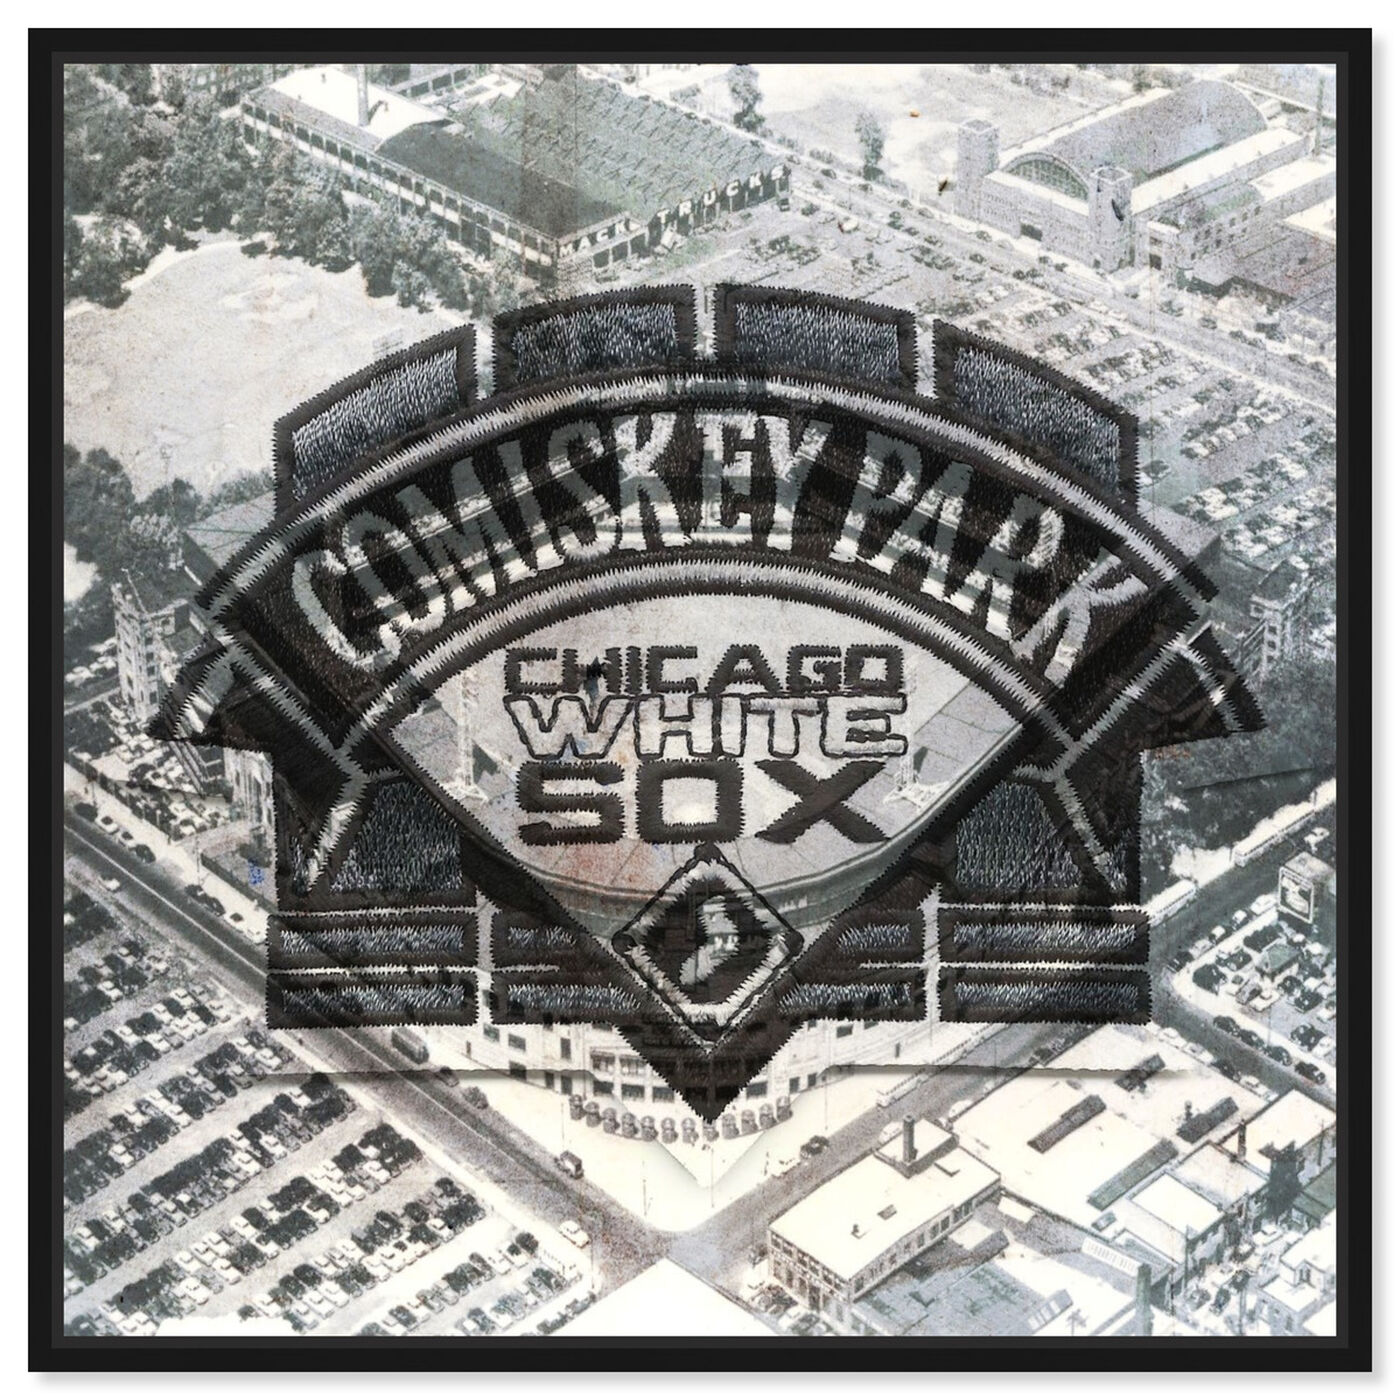 Front view of Comiskey Park White Sox featuring cities and skylines and united states cities art.